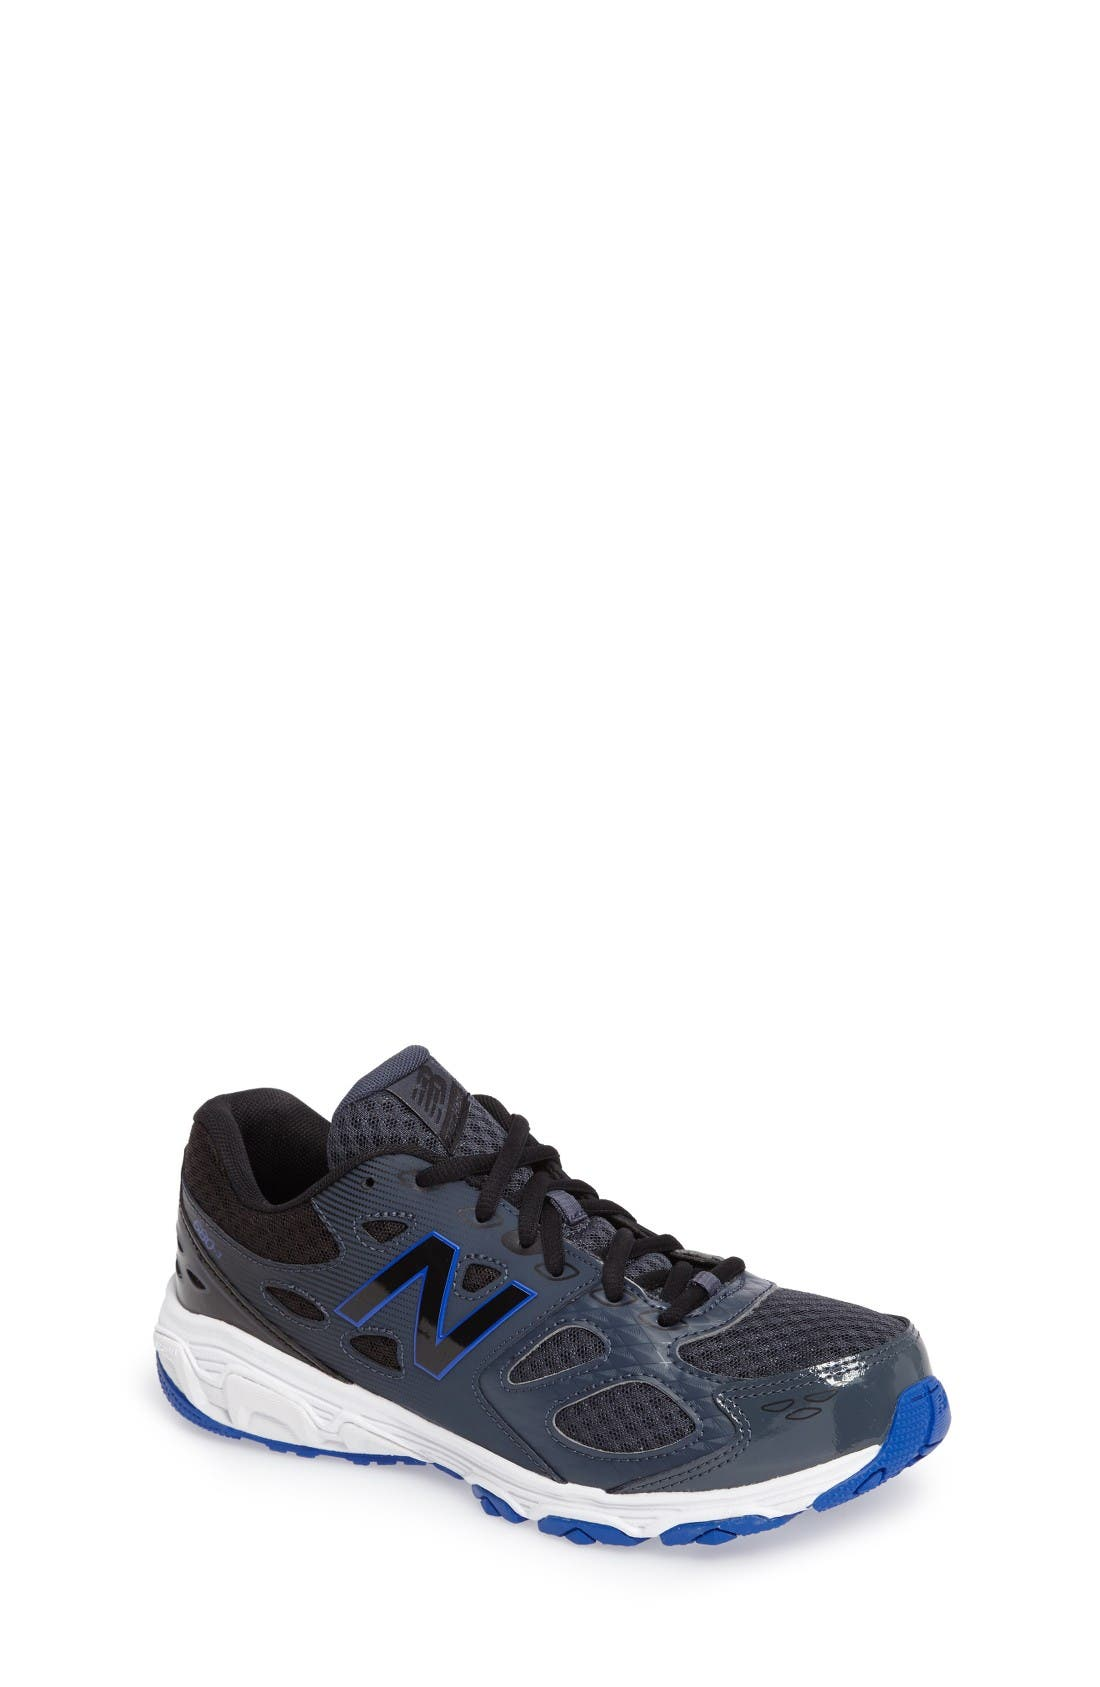 New Balance 680v3 Sneaker (Toddler, Little Kid & Big Kid)